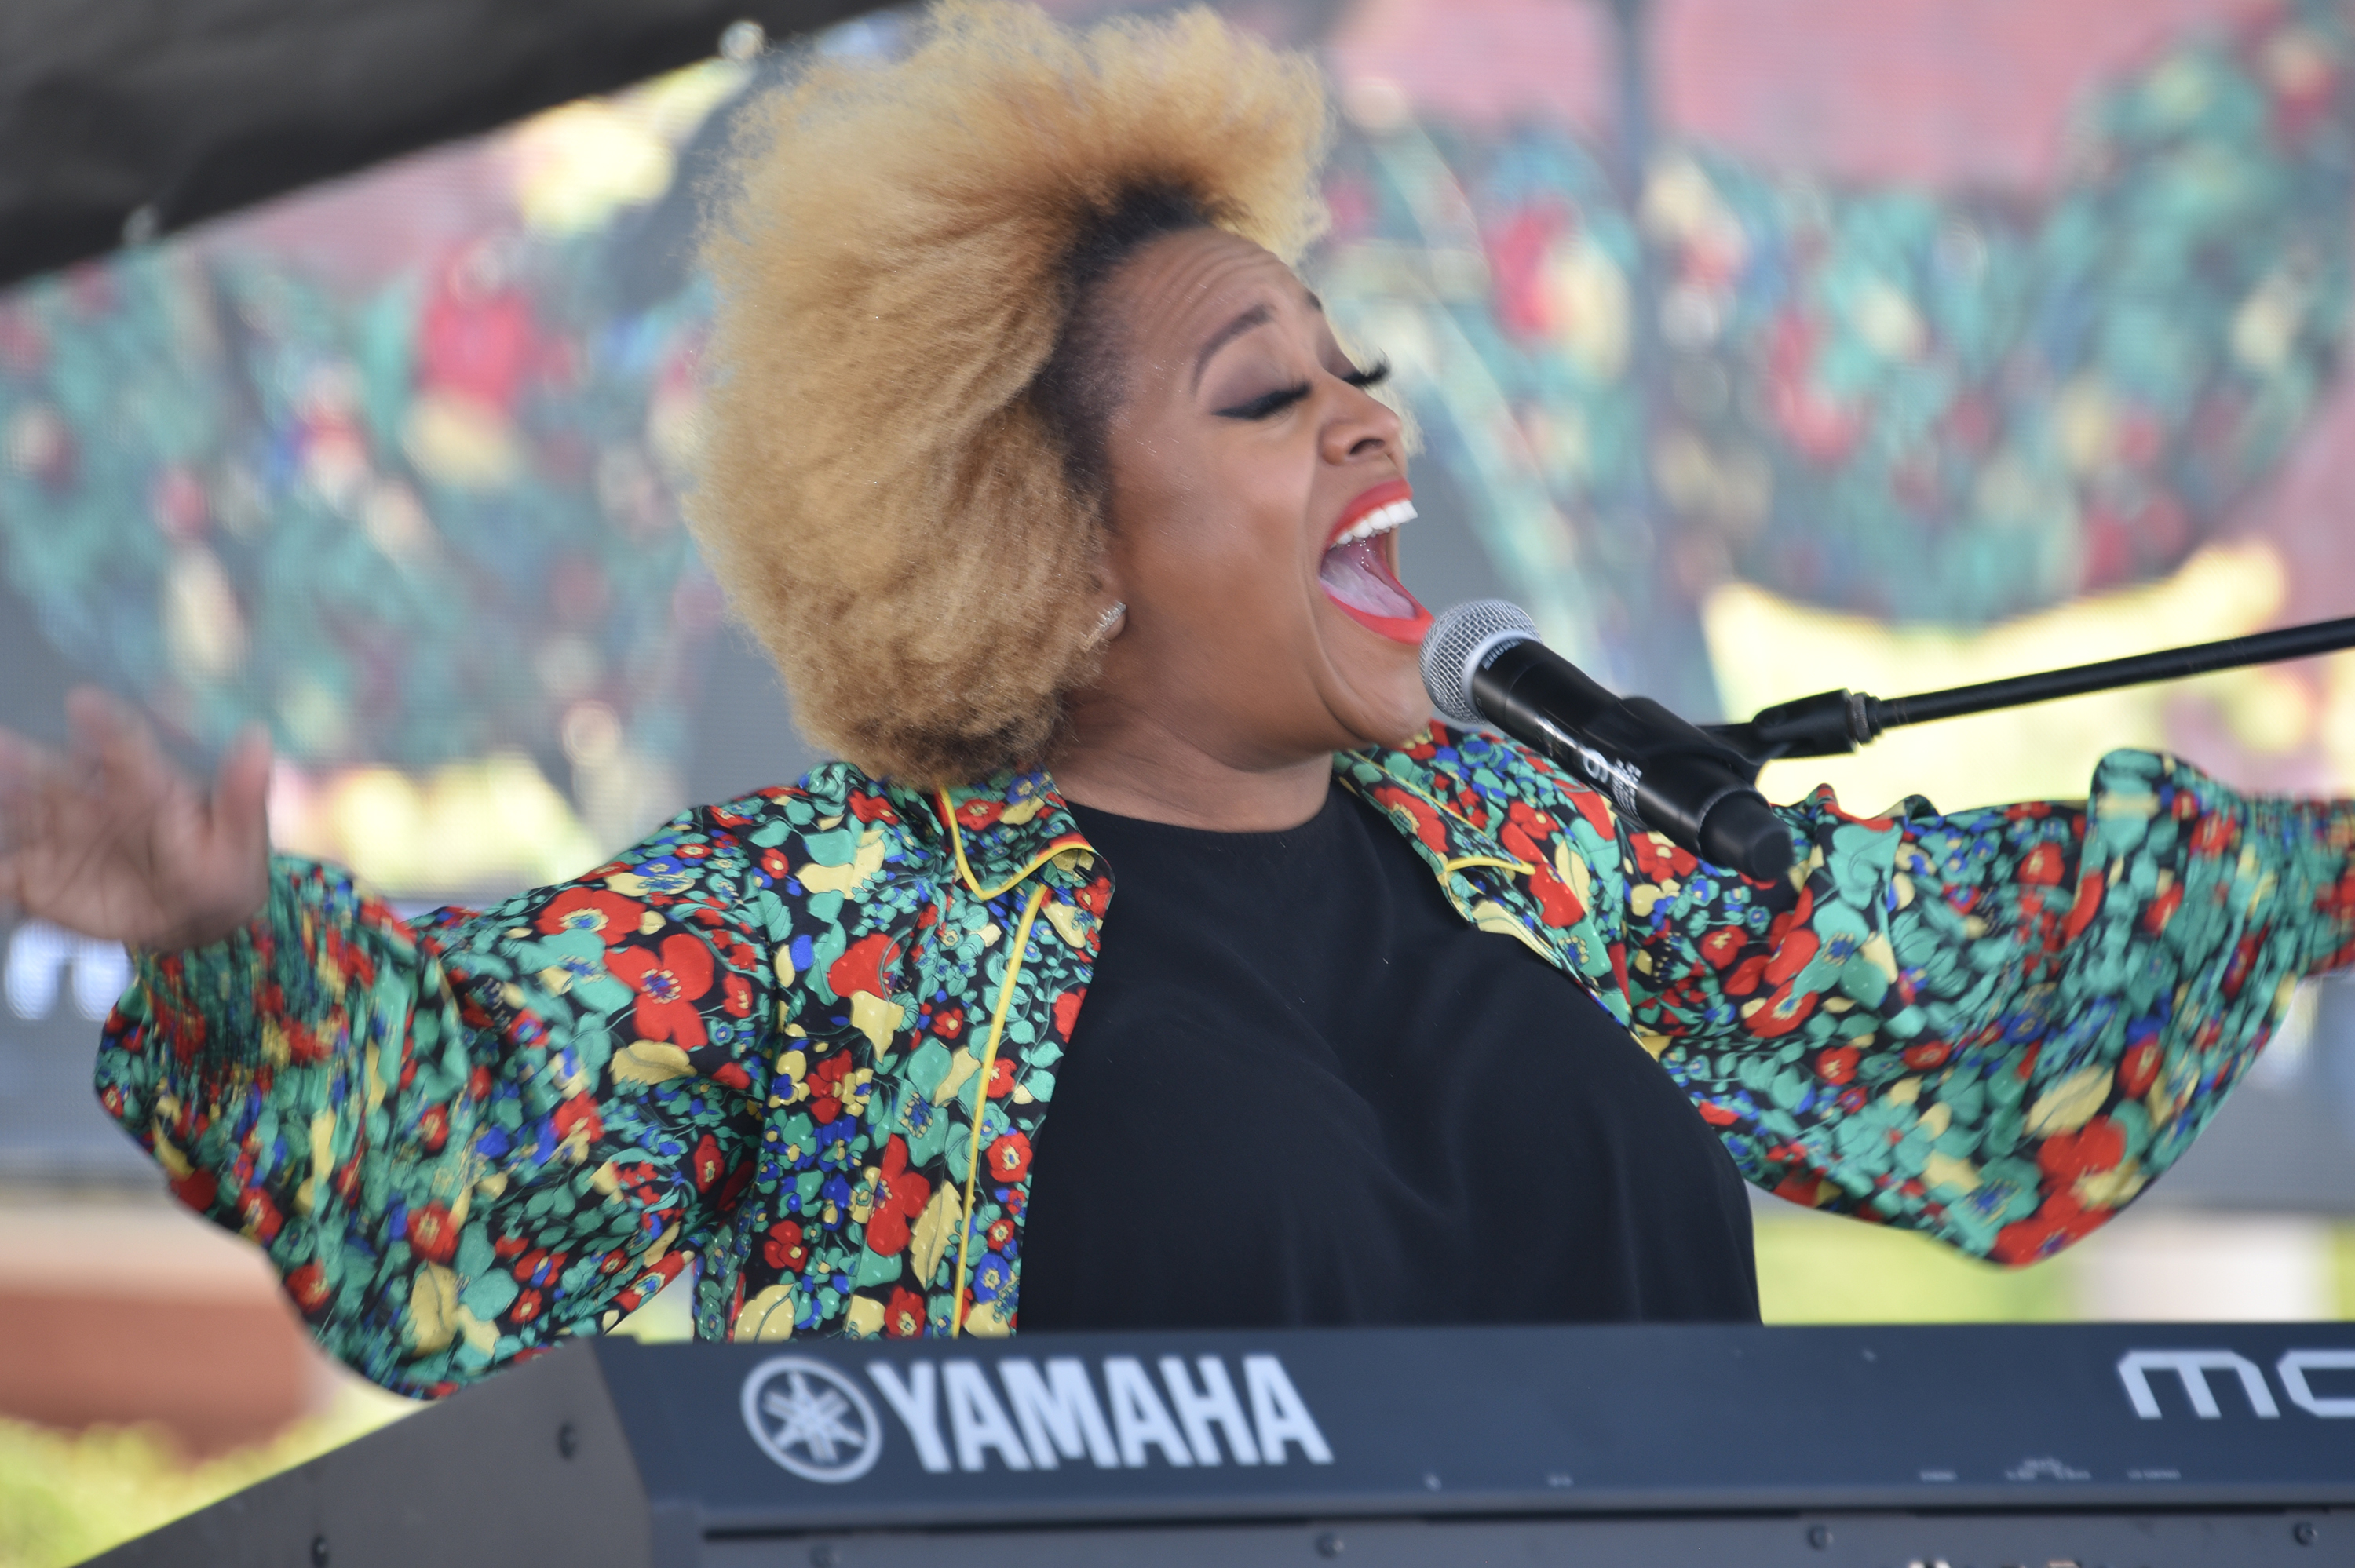 Recording artist Avery Sunshine provided soulful music vocals during the celebration.